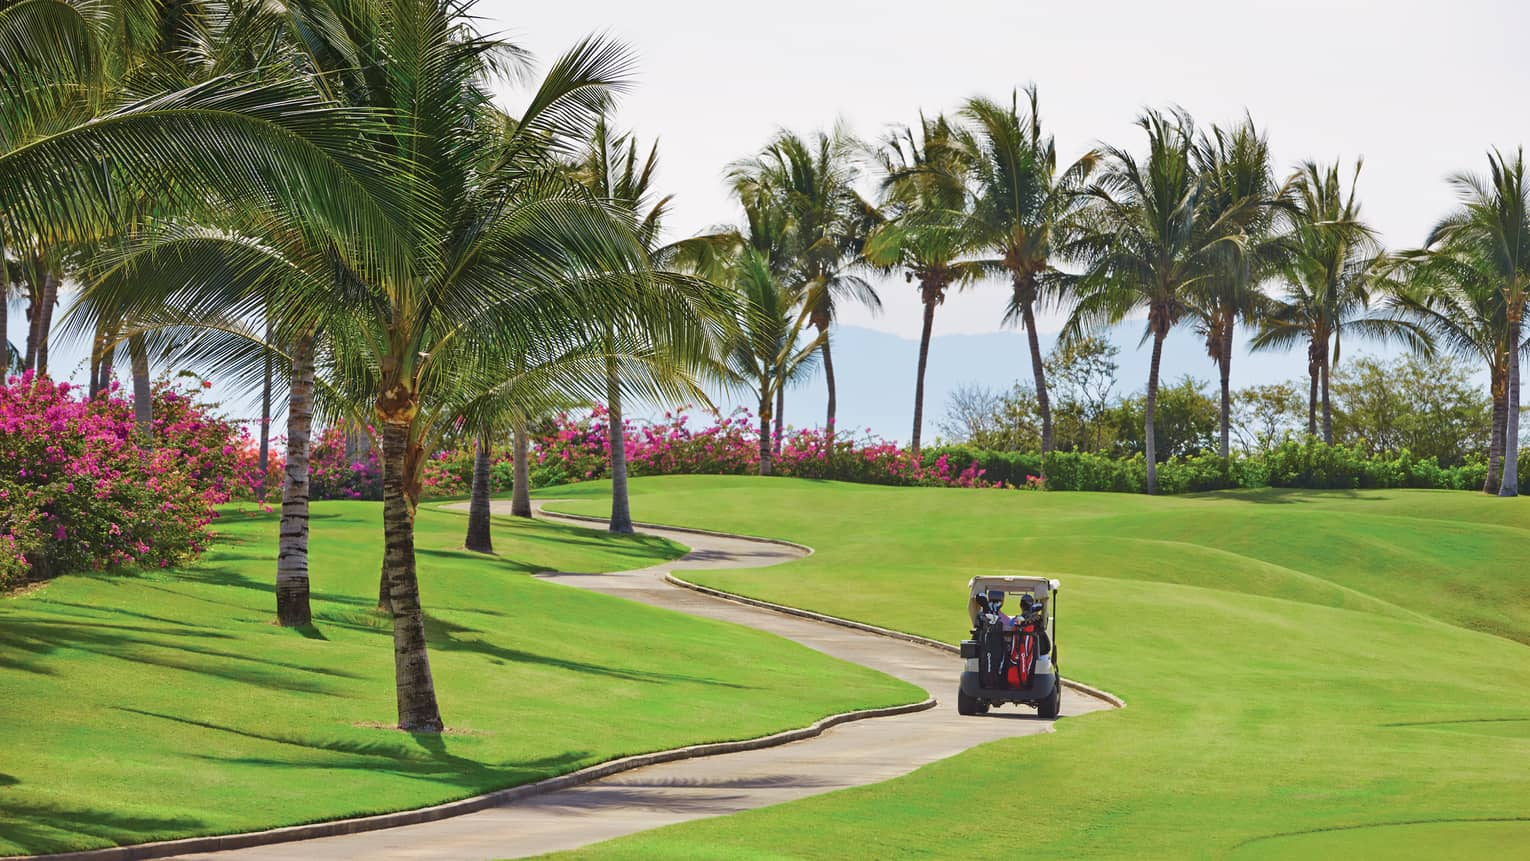 Back of golf cart driving down path on sunny golf course under palm trees